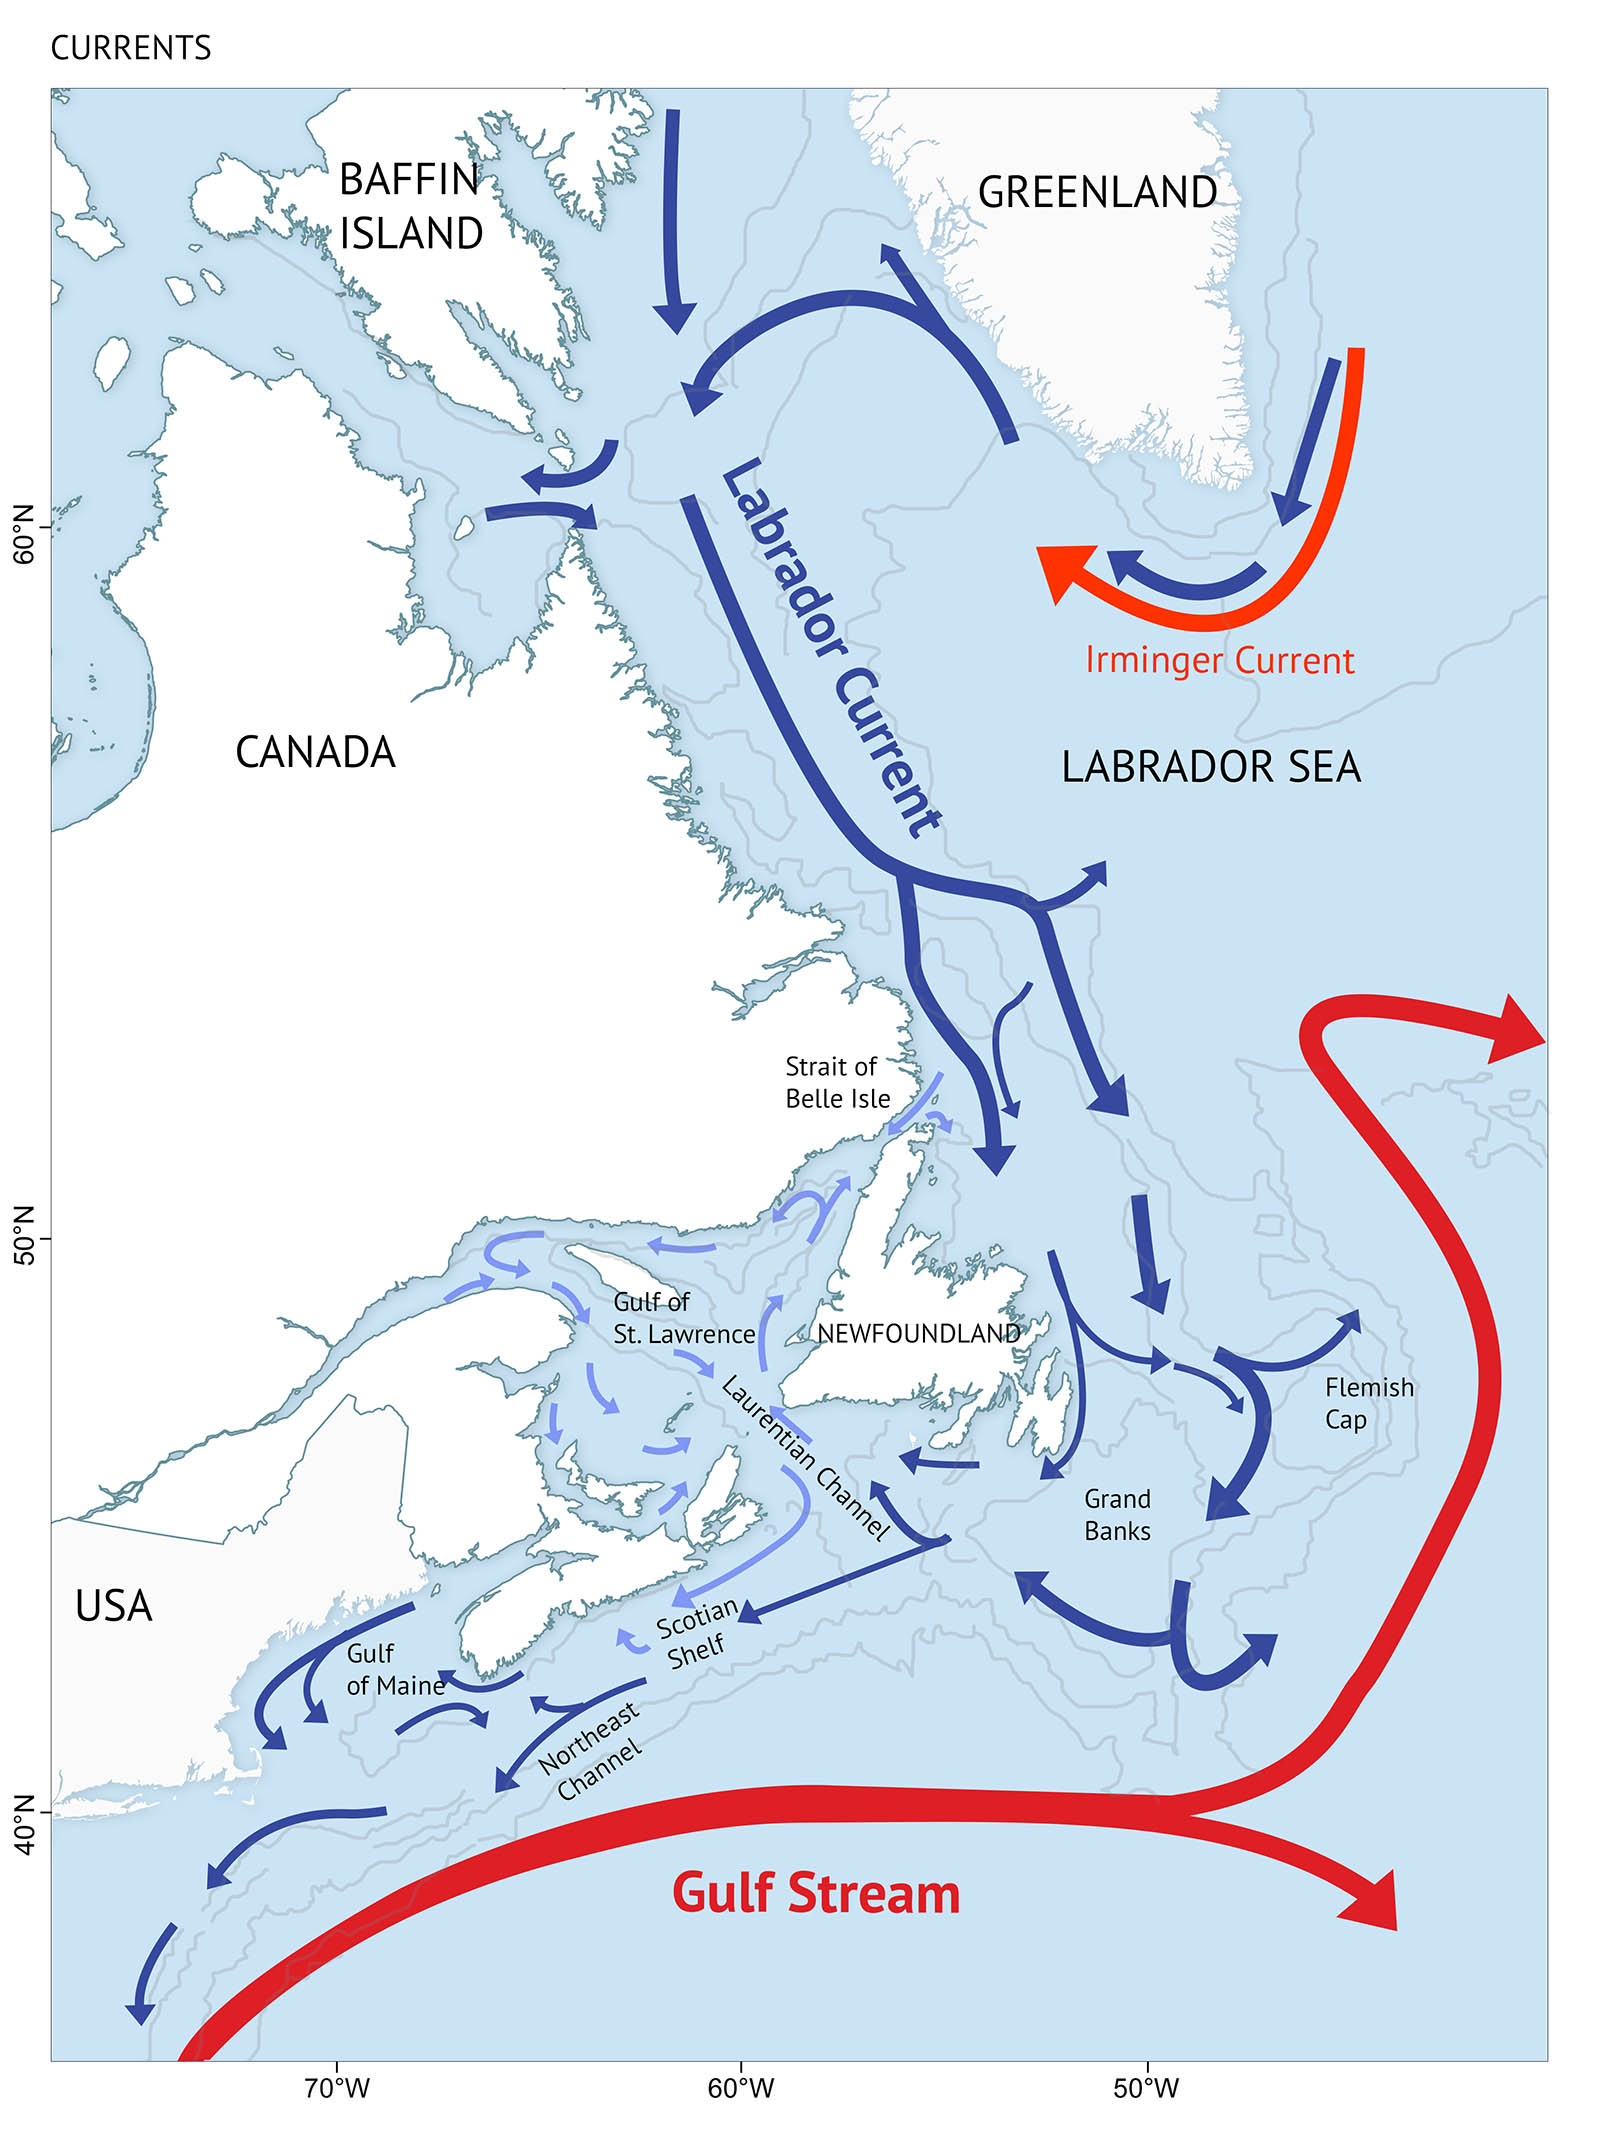 Figure 2: Currents of the Canadian Atlantic – Two main current systems influence the Canadian Atlantic – the cold Labrador Current from the north (darker blue), and the warm Gulf Stream from the south (dark red). A map of the Canadian Atlantic highlighting current systems in the water. A thick dark red line with an arrow at the end represents the Gulf Stream flowing north and east of North America. A dark blue line with an arrow at the end represents the Labrador Current flowing south from Baffin Island and Greenland. An orange current indicates Irminger Current which is shown on the south end of Greenland. Smaller blue lines with arrows are spread across the map to indicate various currents of the Canadian Atlantic.